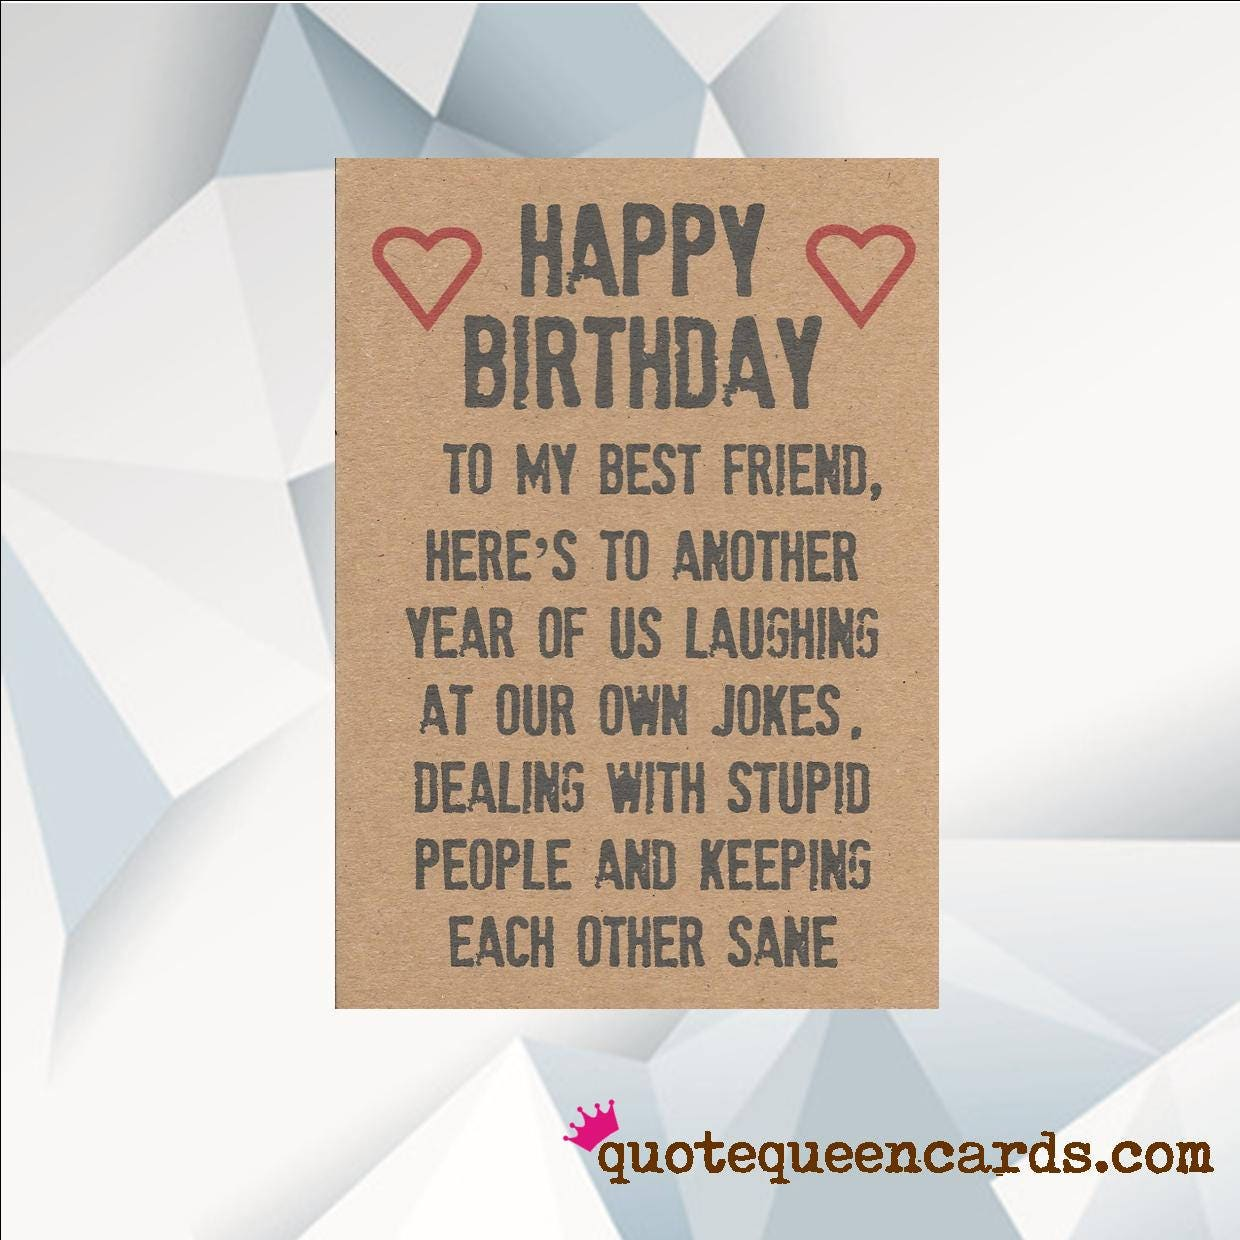 Happy Birthday BEST FRIEND Funny Card For Friend